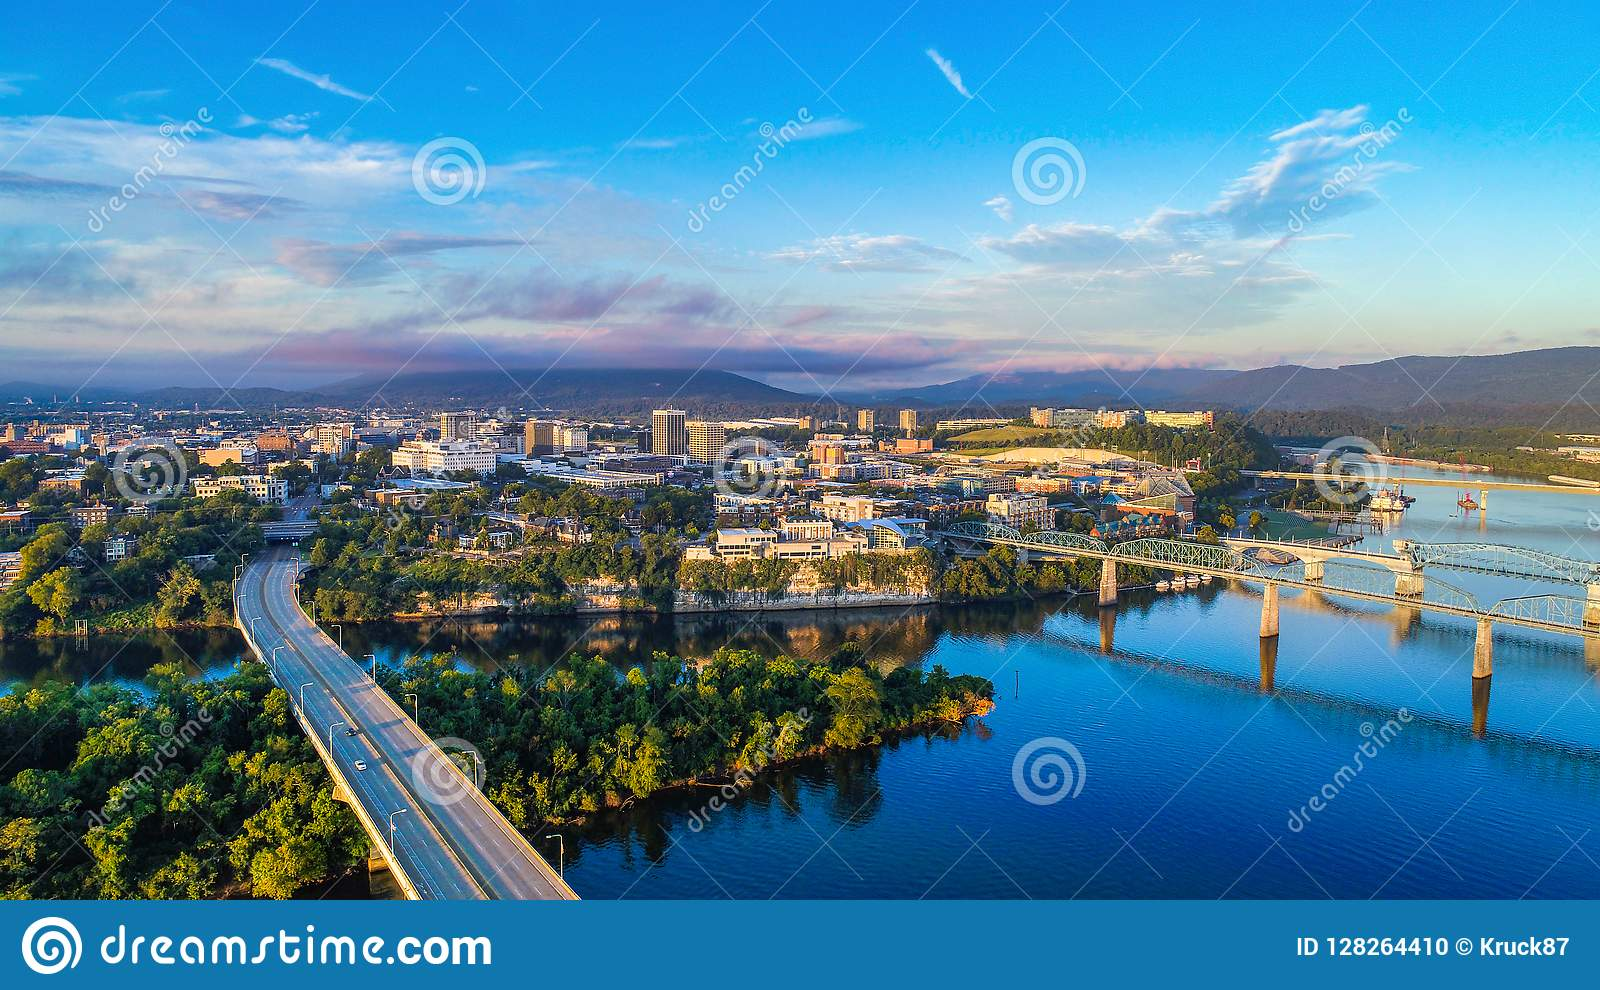 Downtown Chattanooga Tennessee Skyline Stock Photo - Image